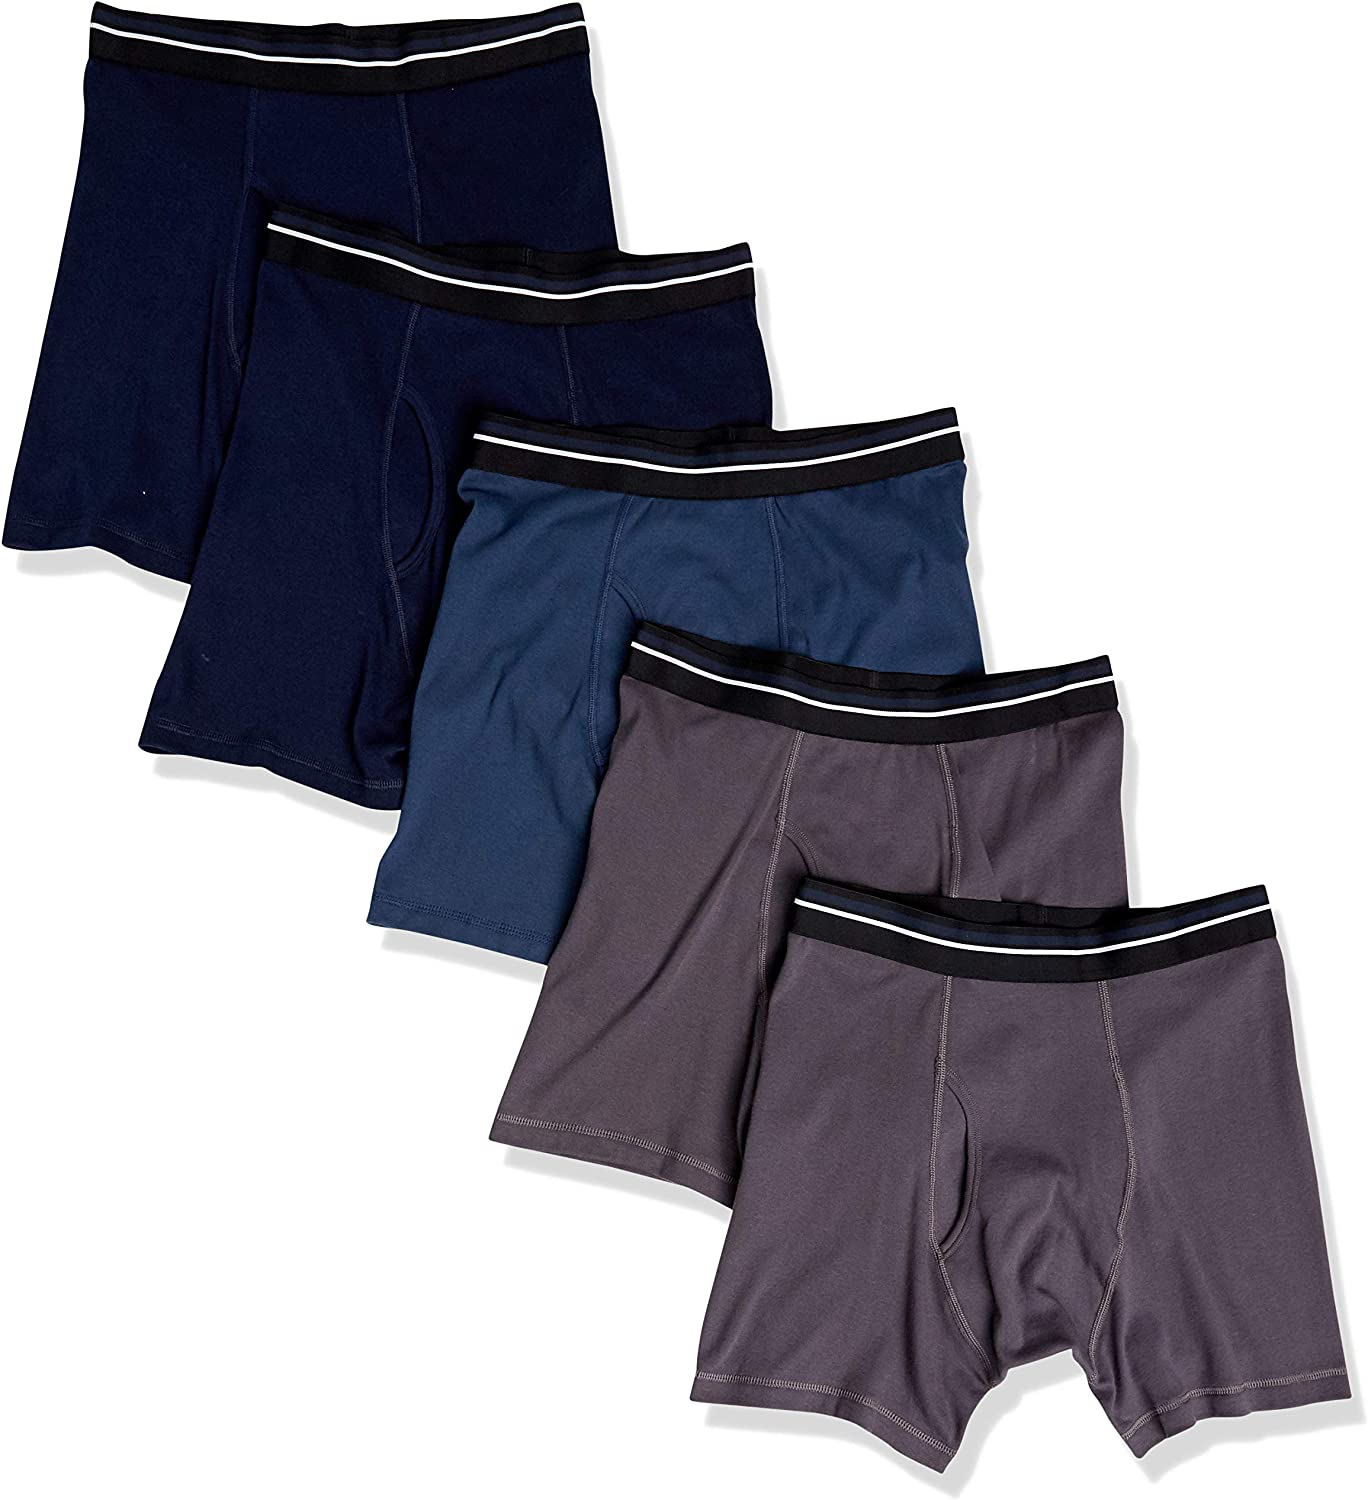 Amazon Essentials Men's 5-Pack Tag-Free Boxer Briefs